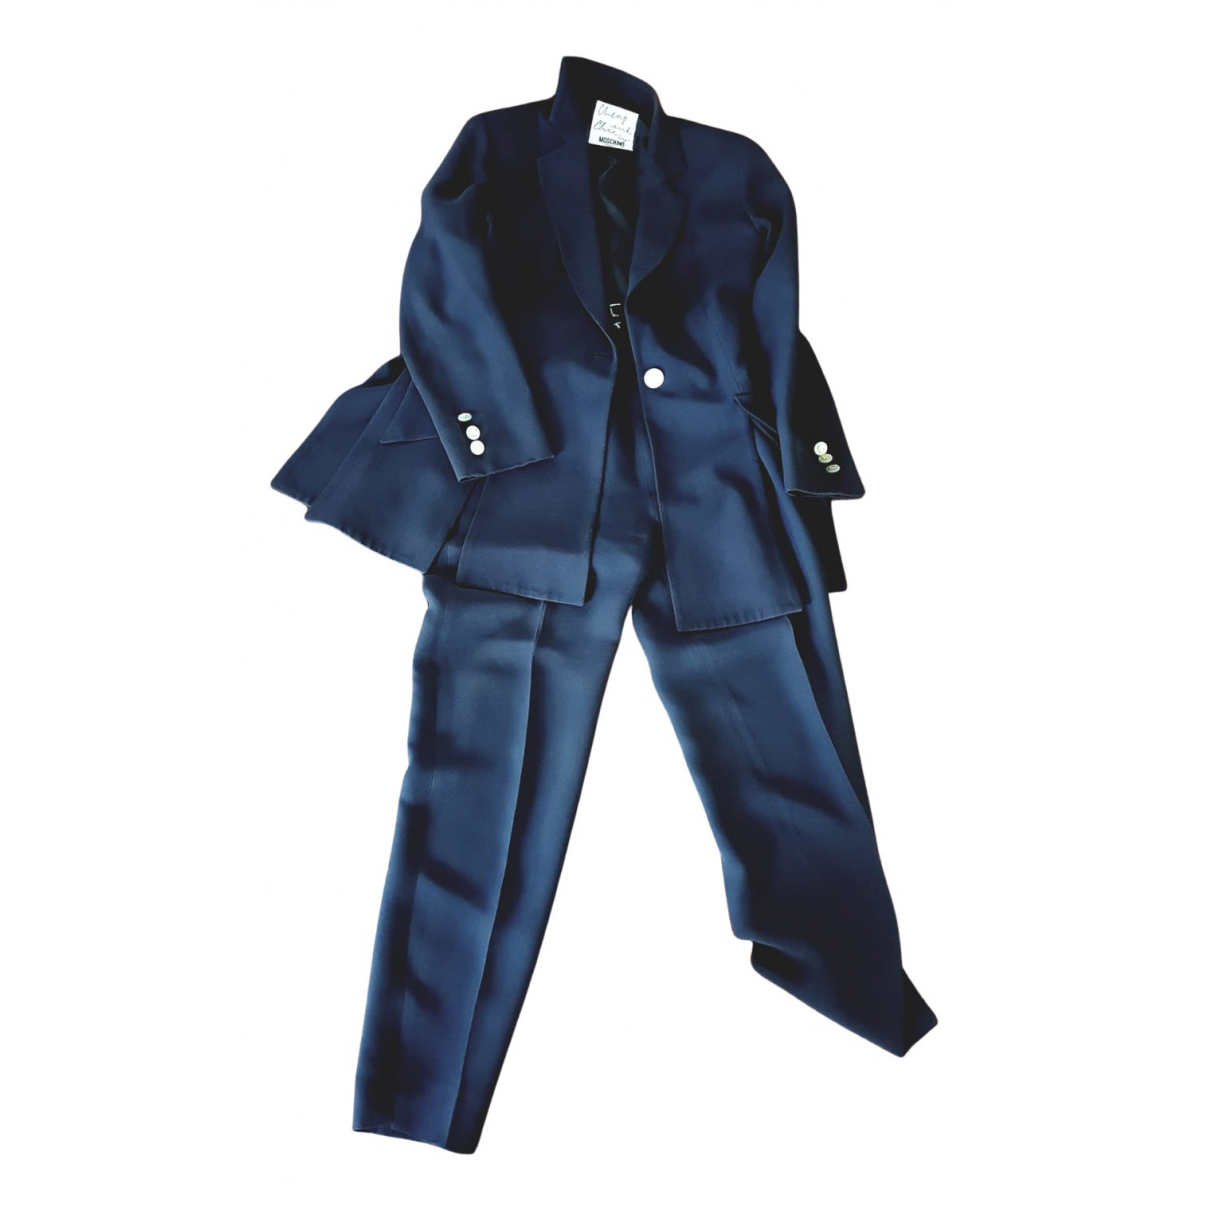 Moschino Cheap And Chic N Blue jacket for Women 42 IT